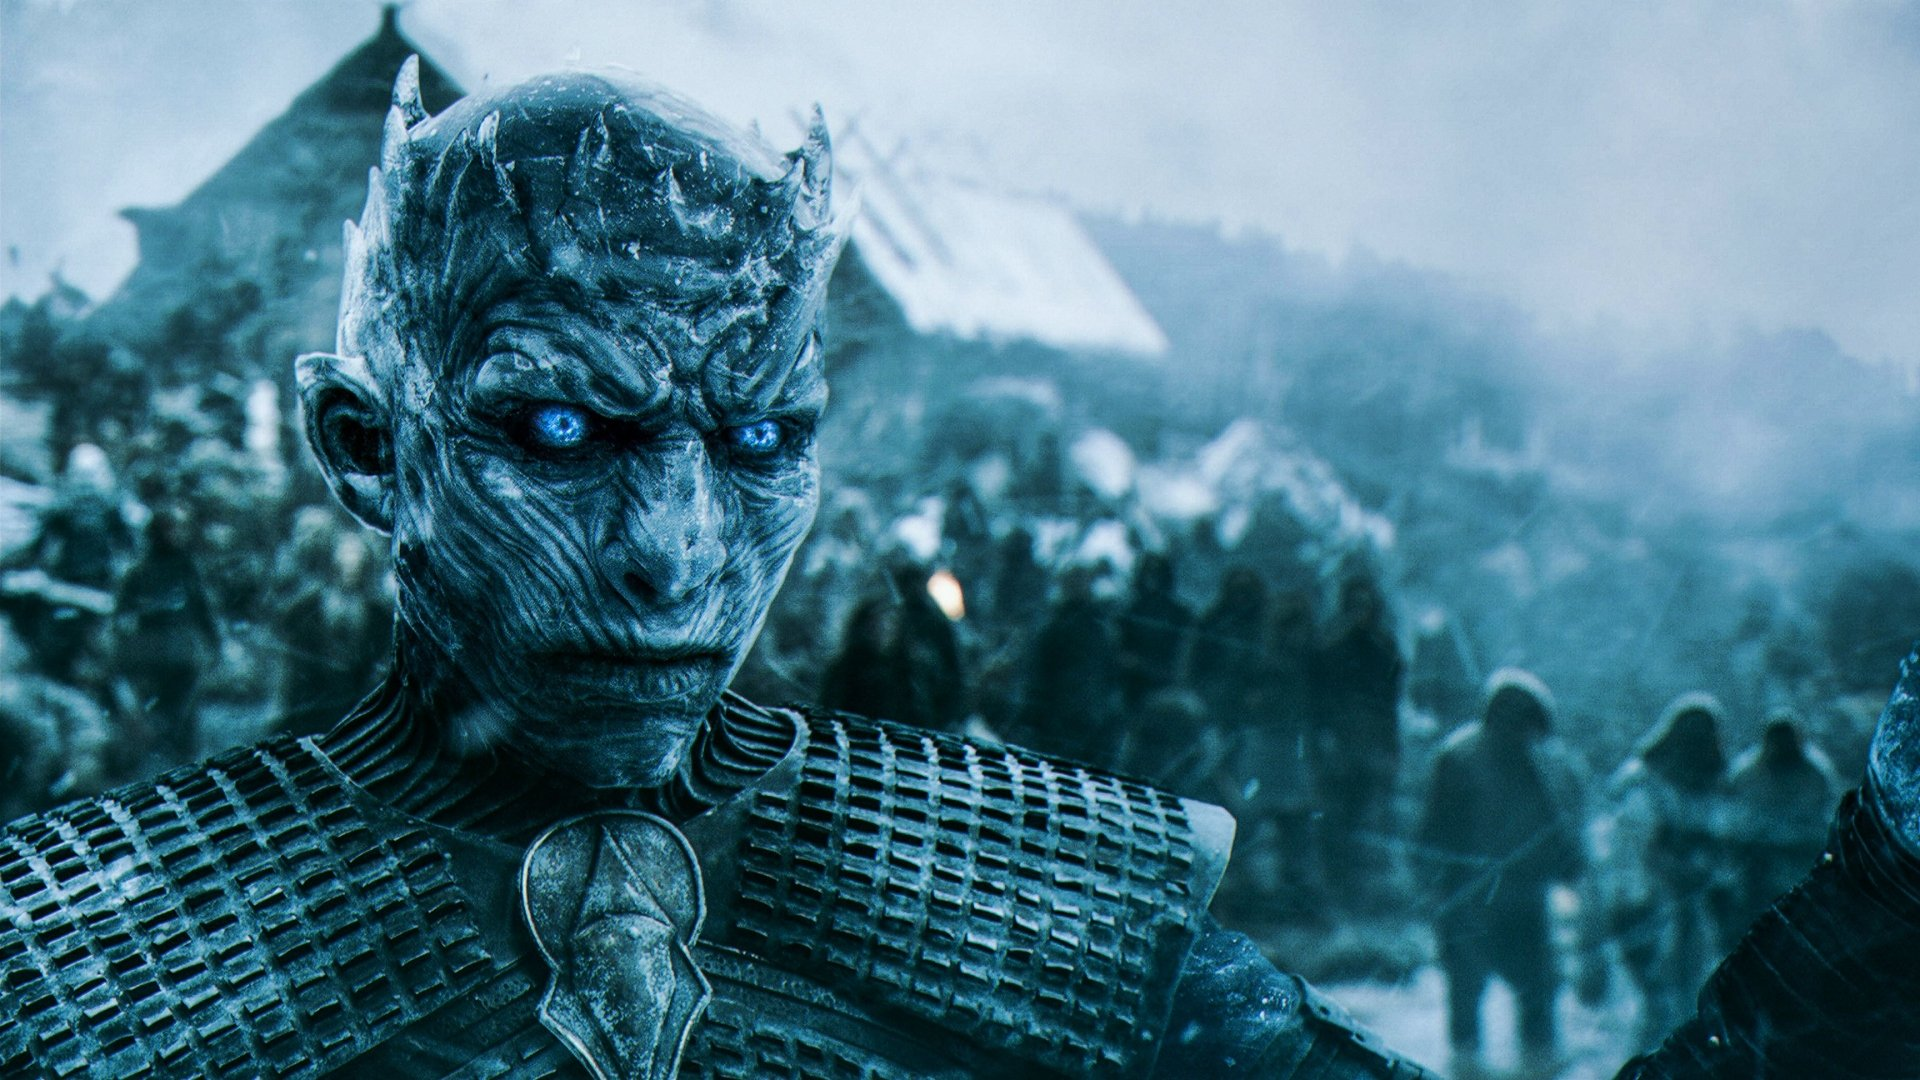 TV Show - Game Of Thrones  Night King (Game of Thrones) White Walker Wallpaper